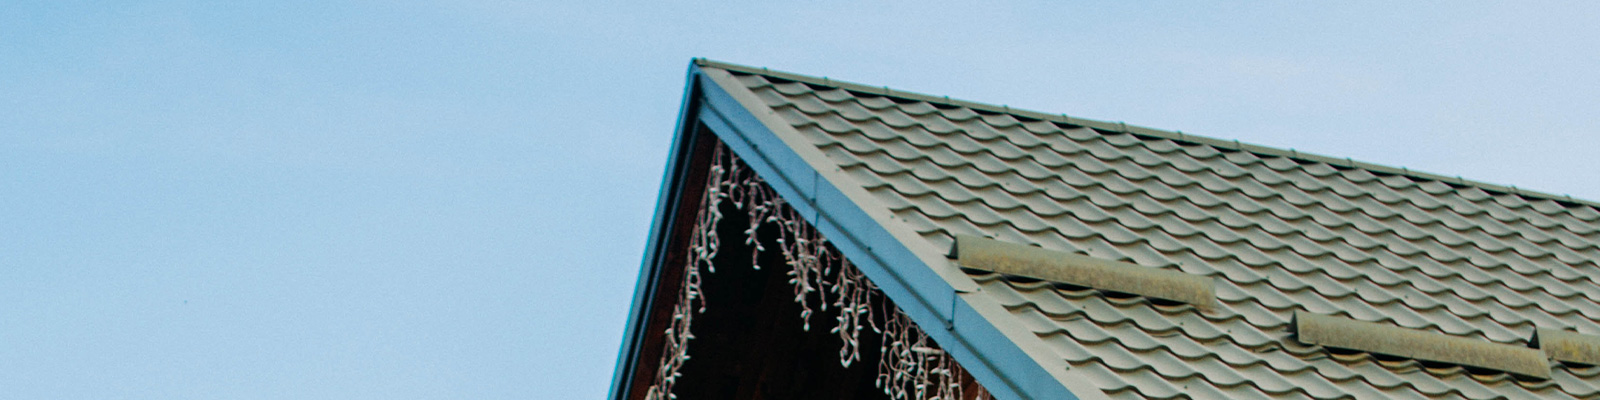 Metal Roof Replacement in Greenwood Village